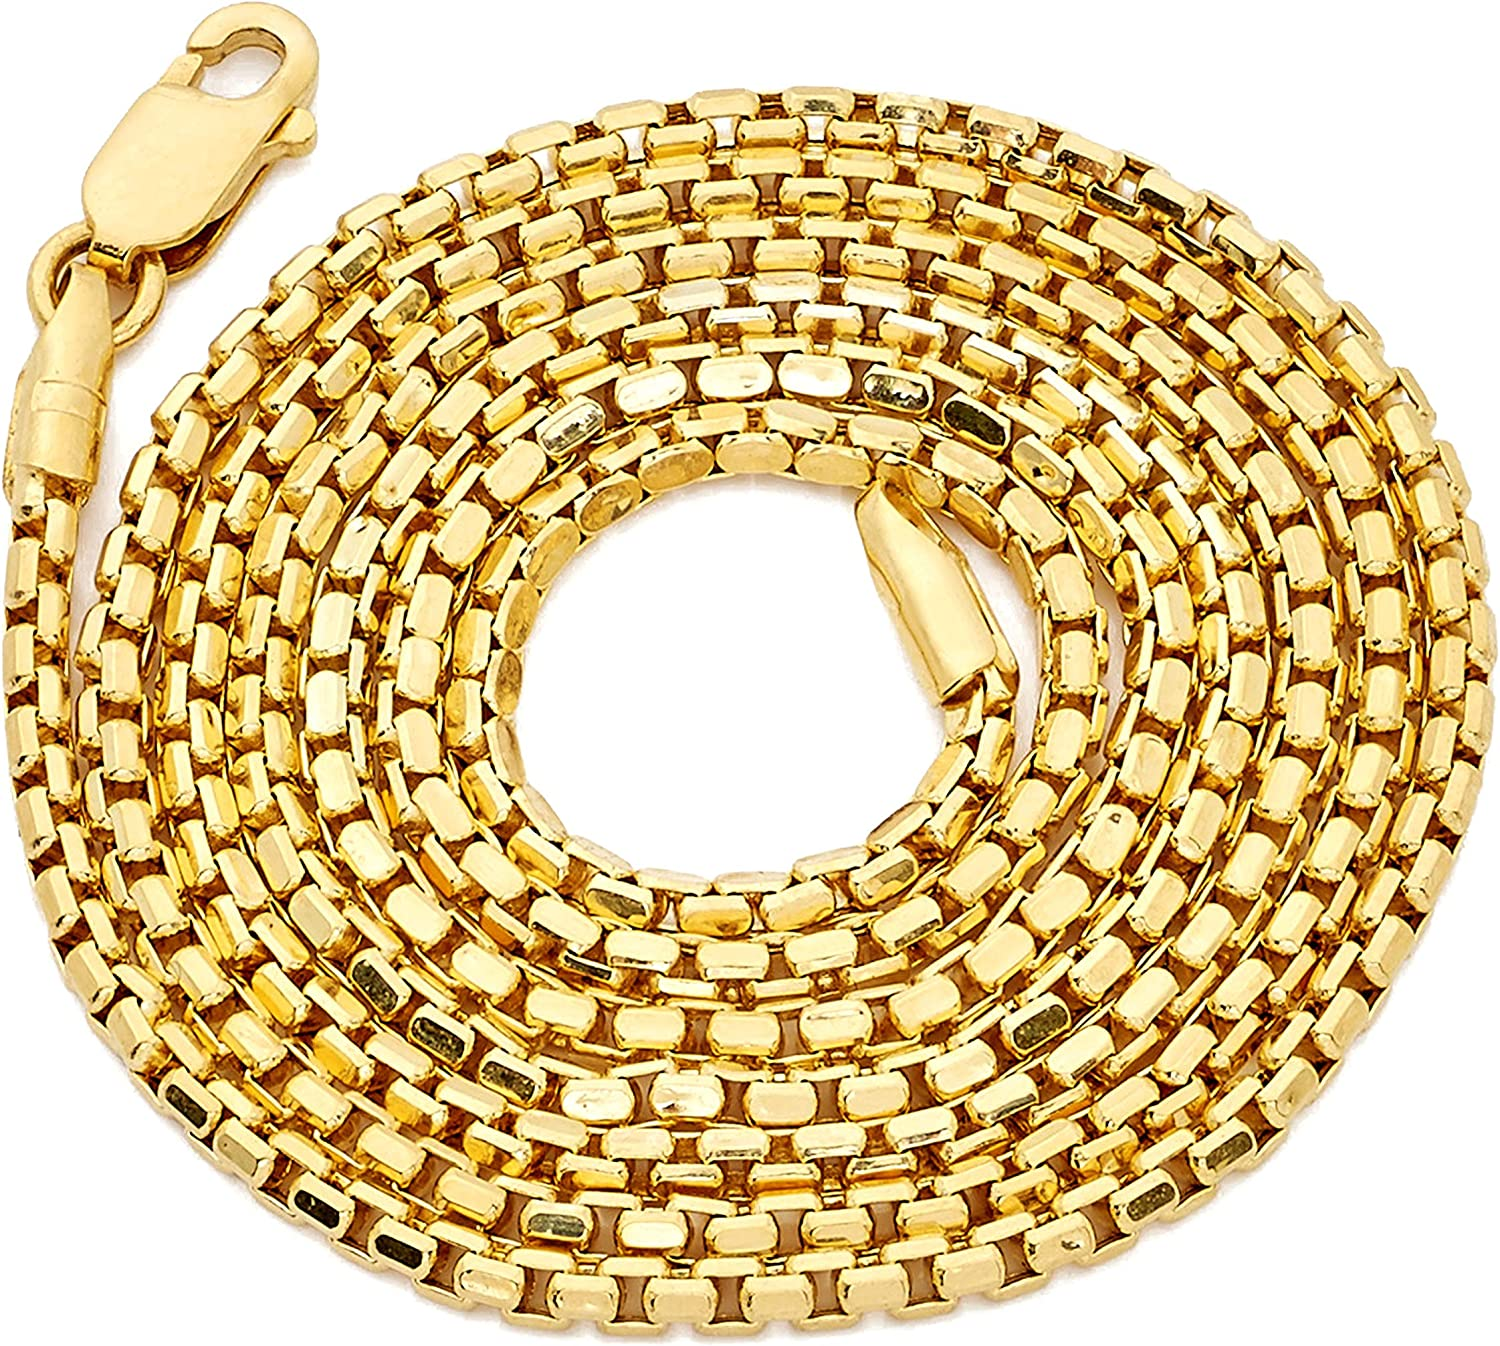 LoveBling 14K Yellow Gold 1.5mm Open Hollow Venetian Box Chain Necklace (Available from 18-24 inches)